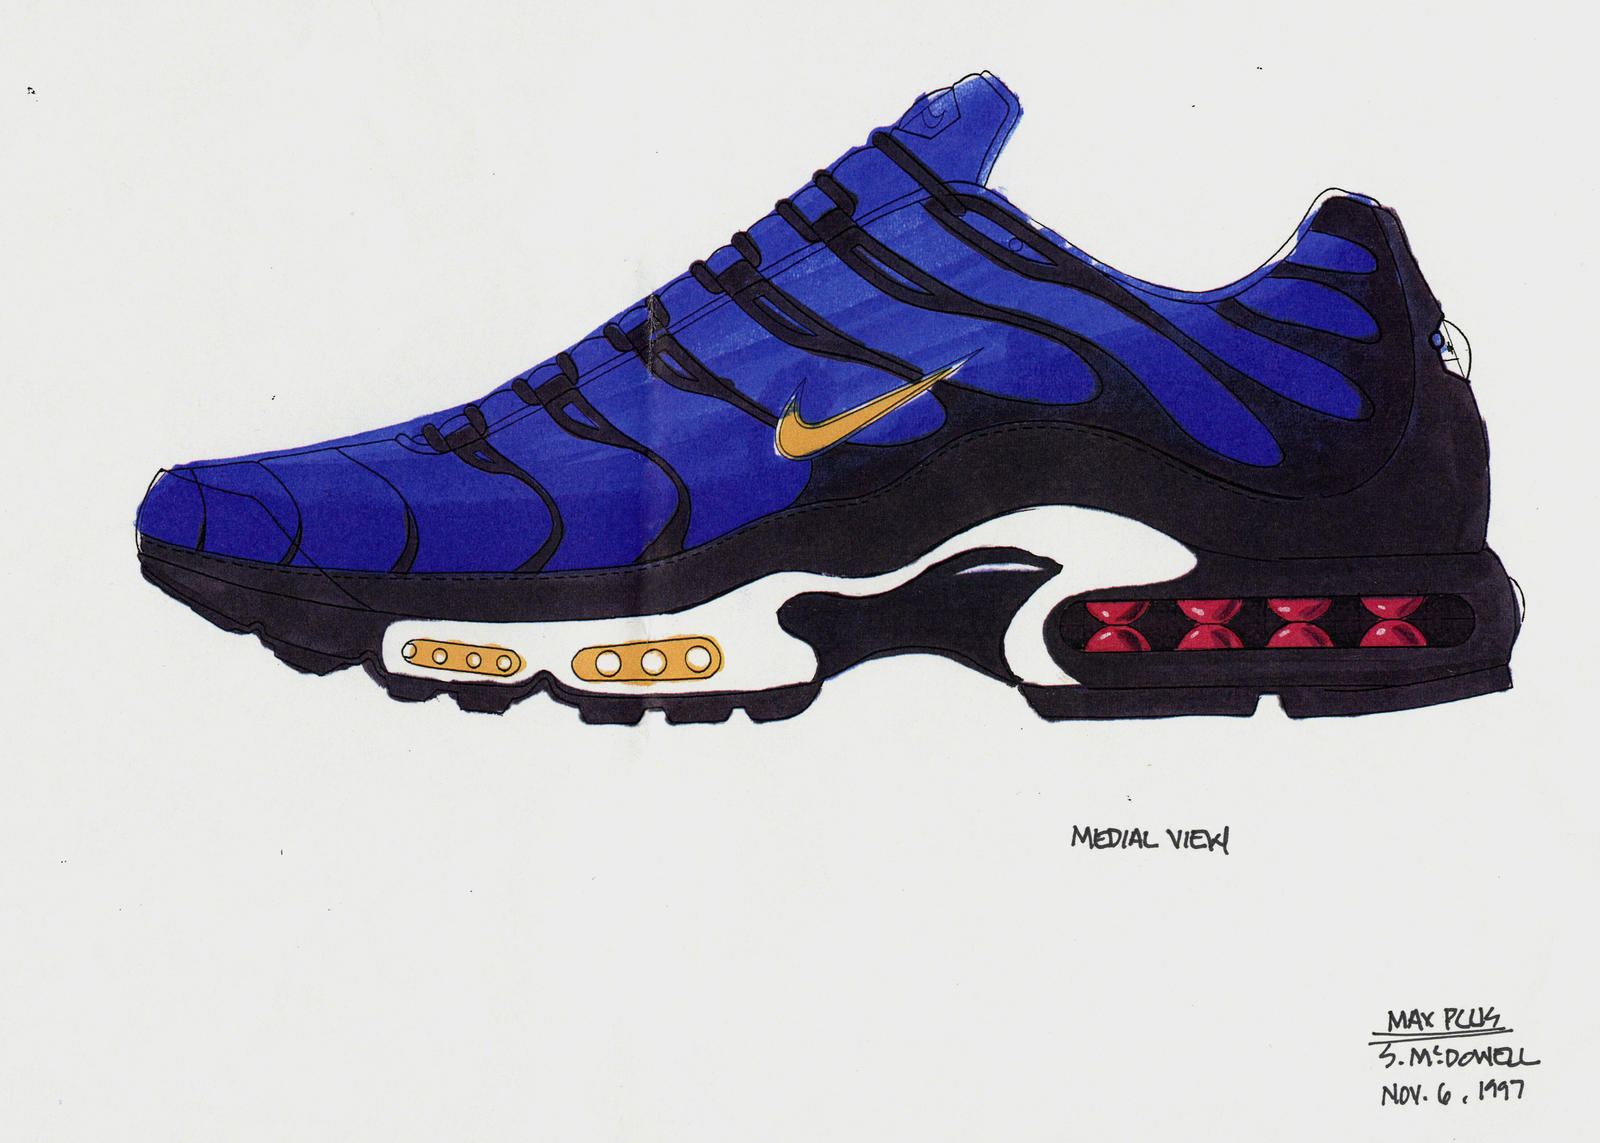 best value d9277 7e944 Nike Air Max Plus TN History - Nike News